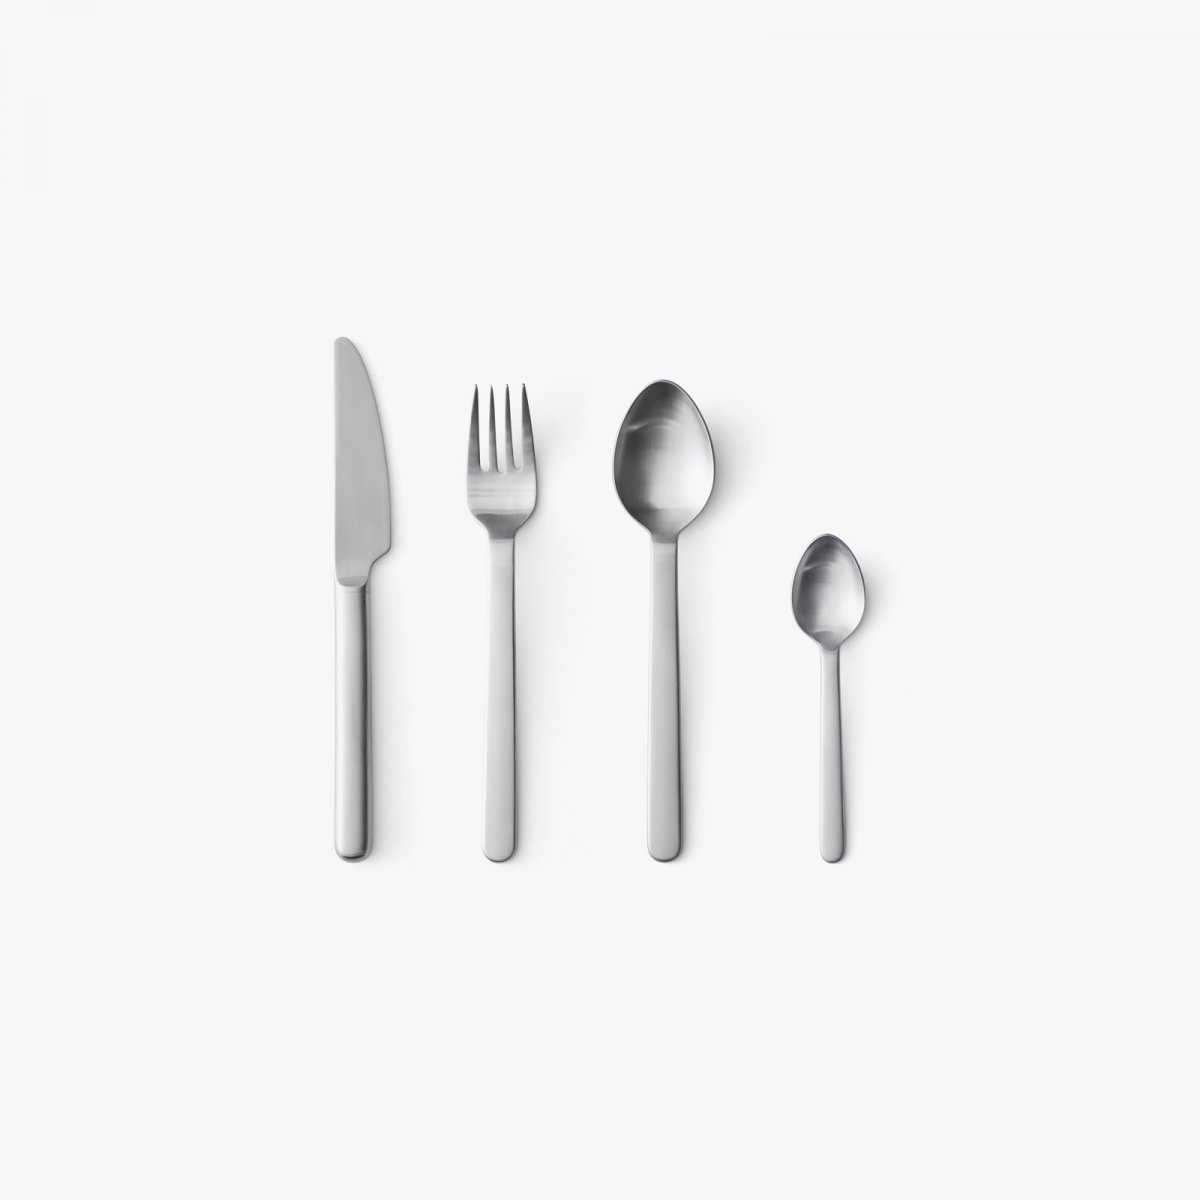 New Norm Cutlery.